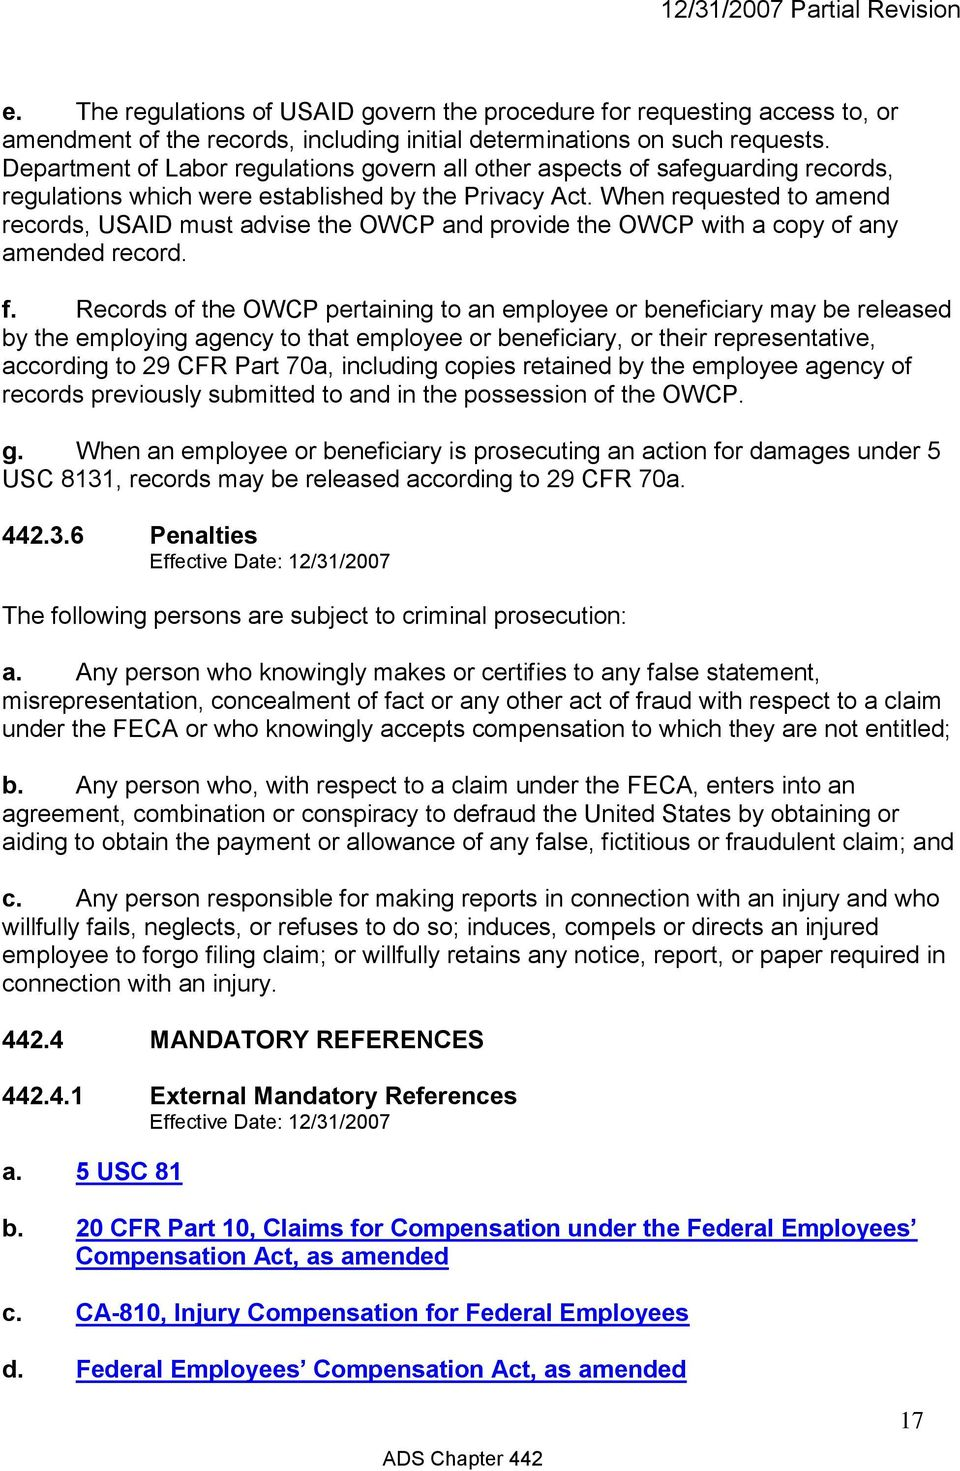 When requested to amend records, USAID must advise the OWCP and provide the OWCP with a copy of any amended record. f.